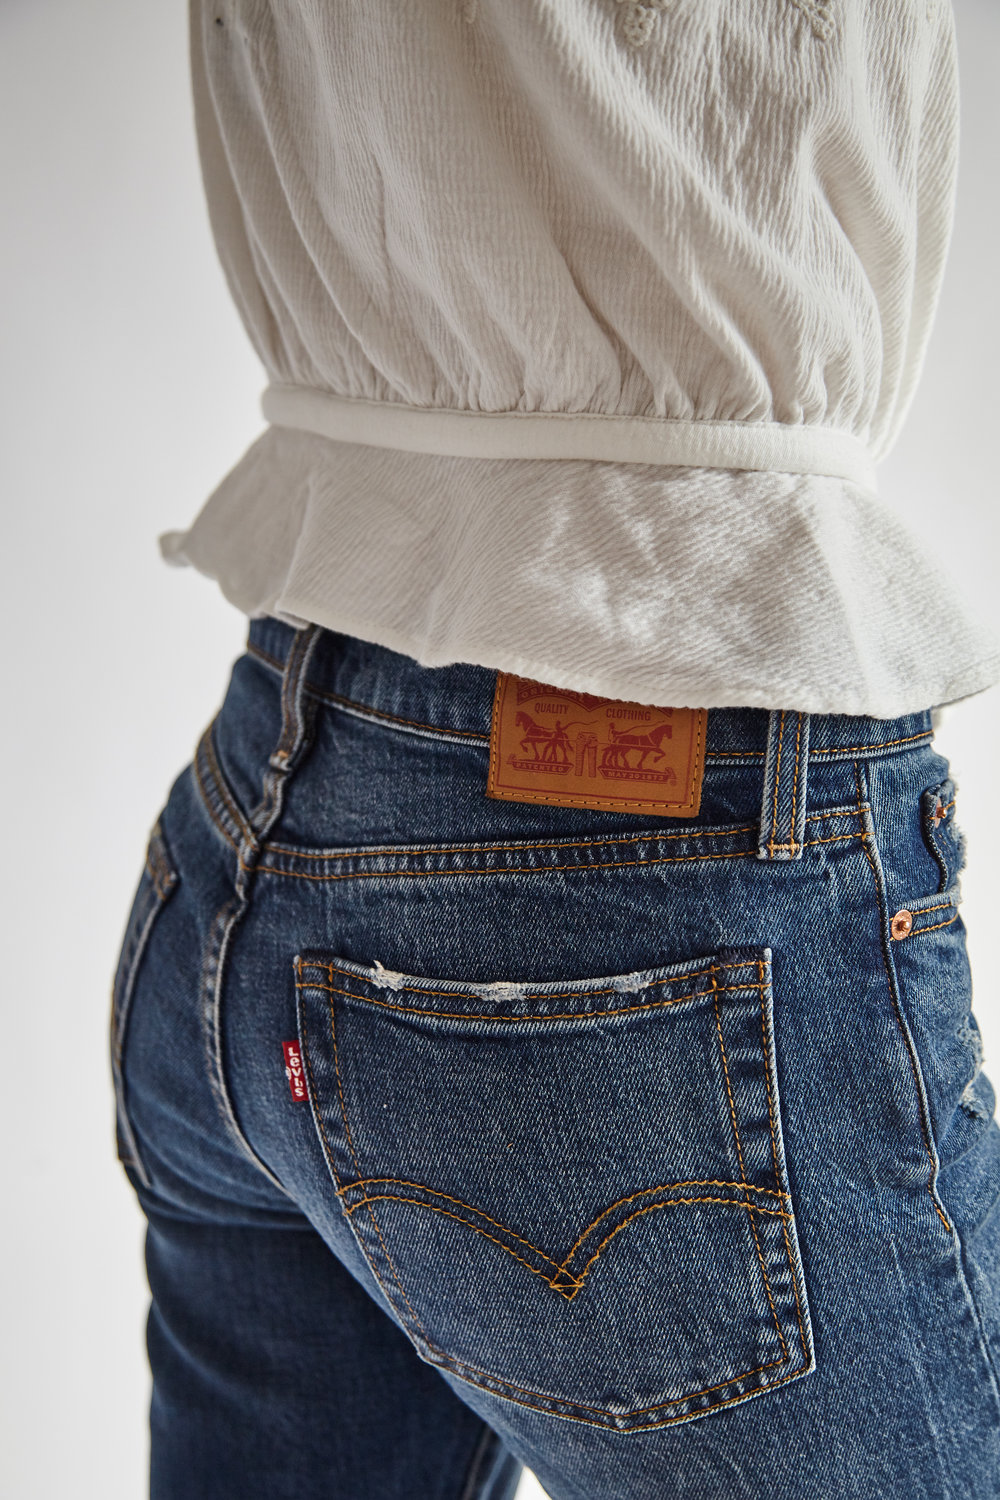 rosie_butcher_Levis_jeans_should_you_invest.jpg